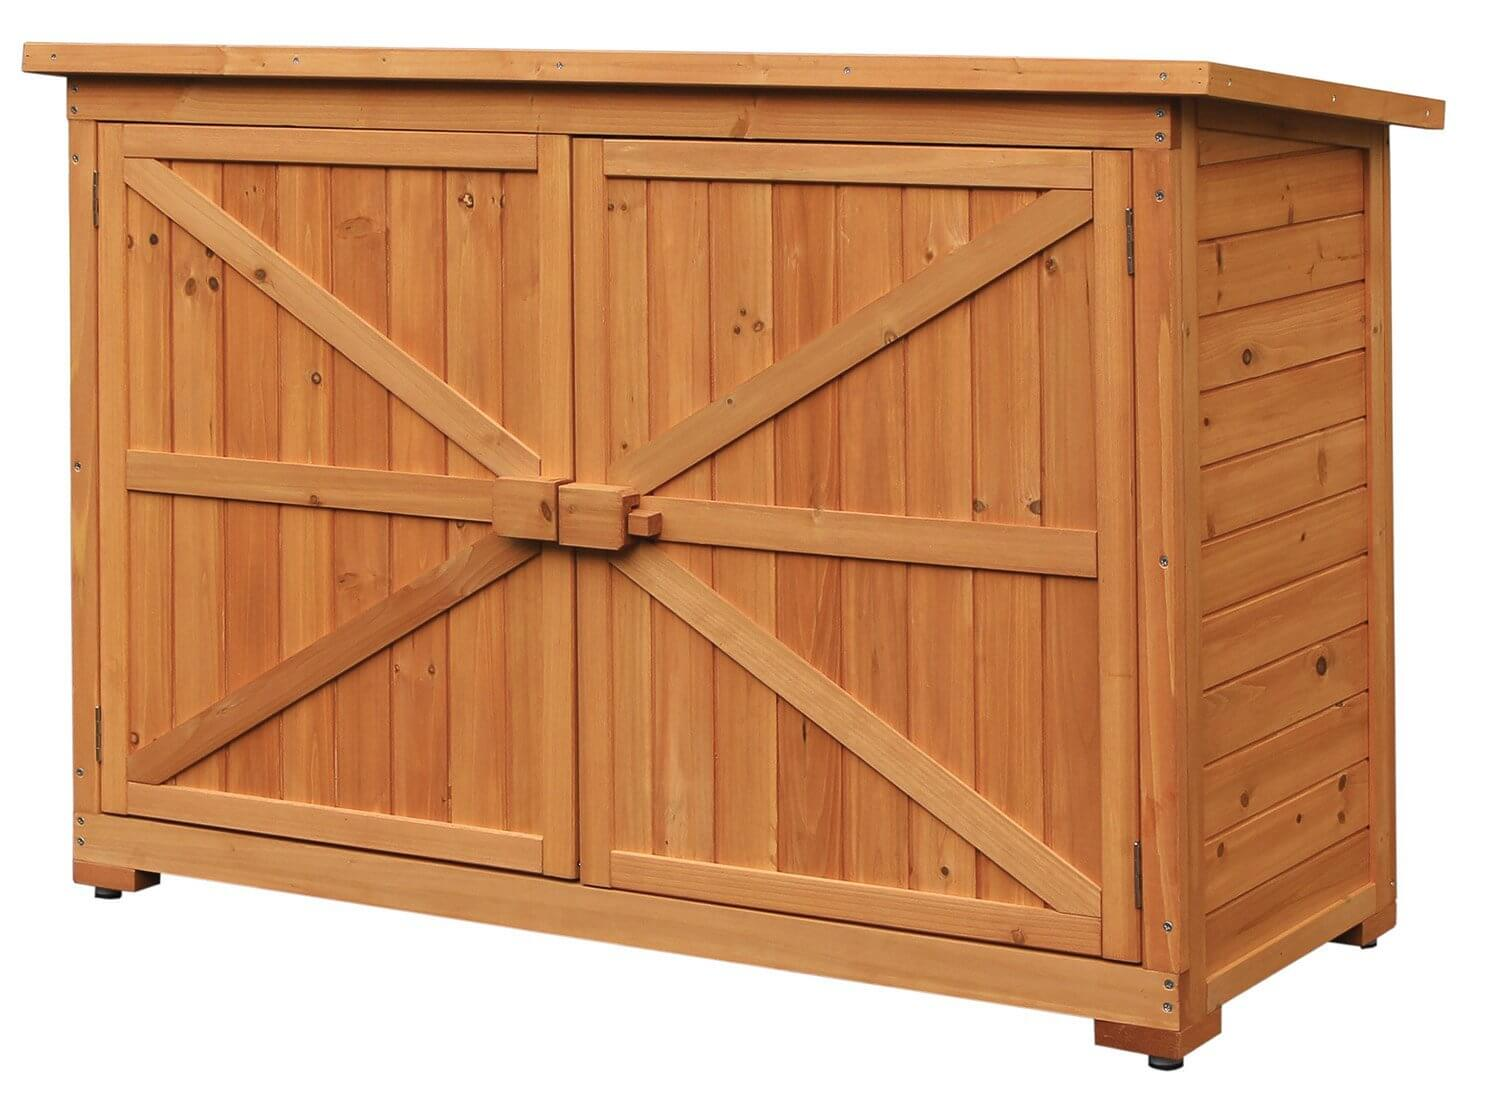 Fir Wood Locker